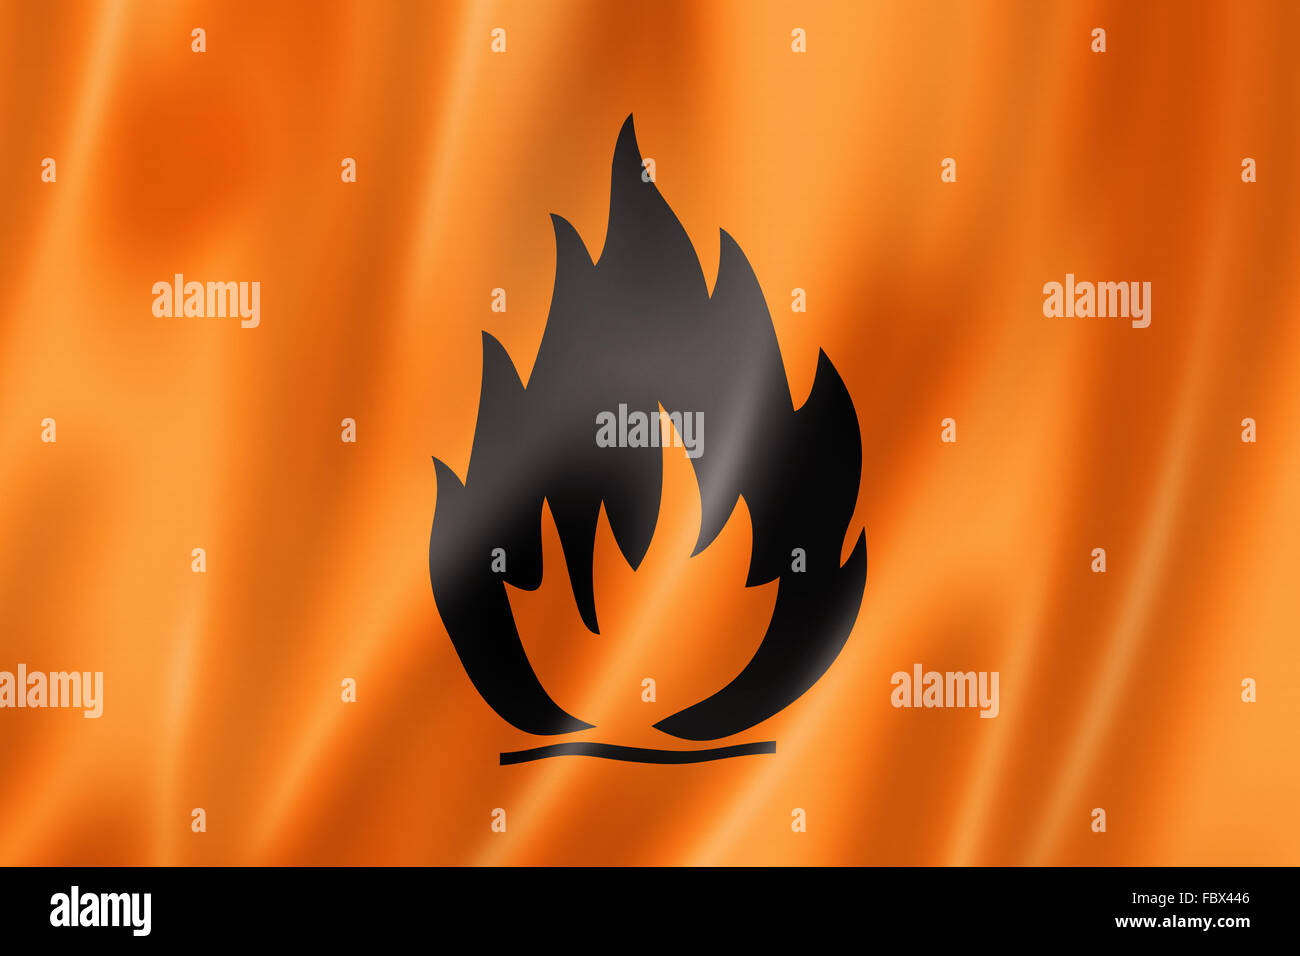 Flammable icon flag - Stock Image